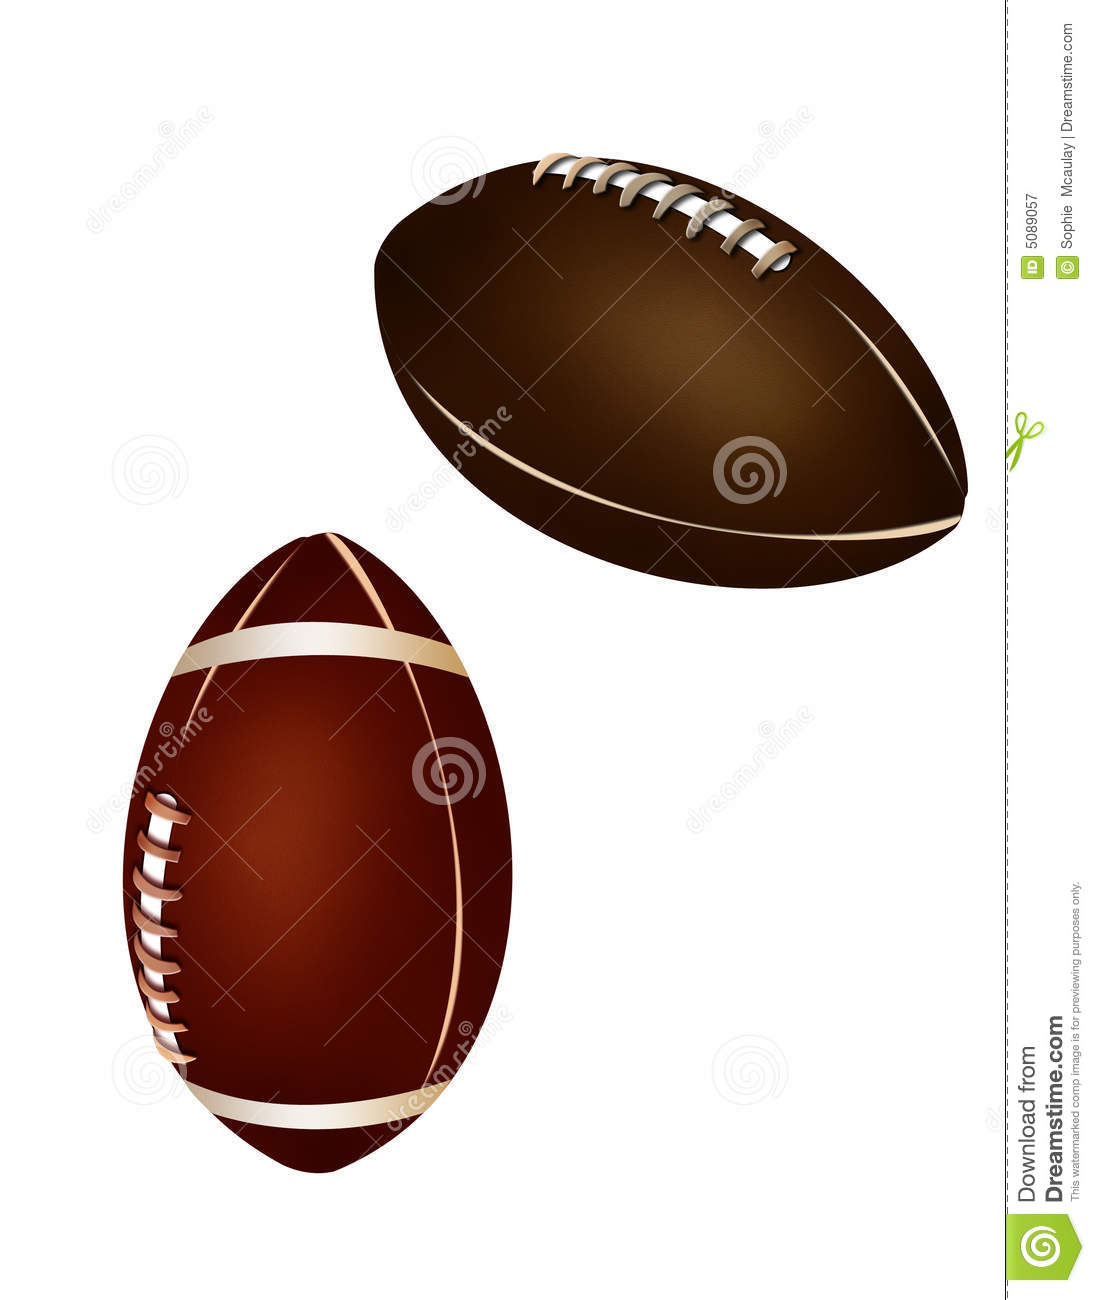 American Football And Rugby Ball Royalty